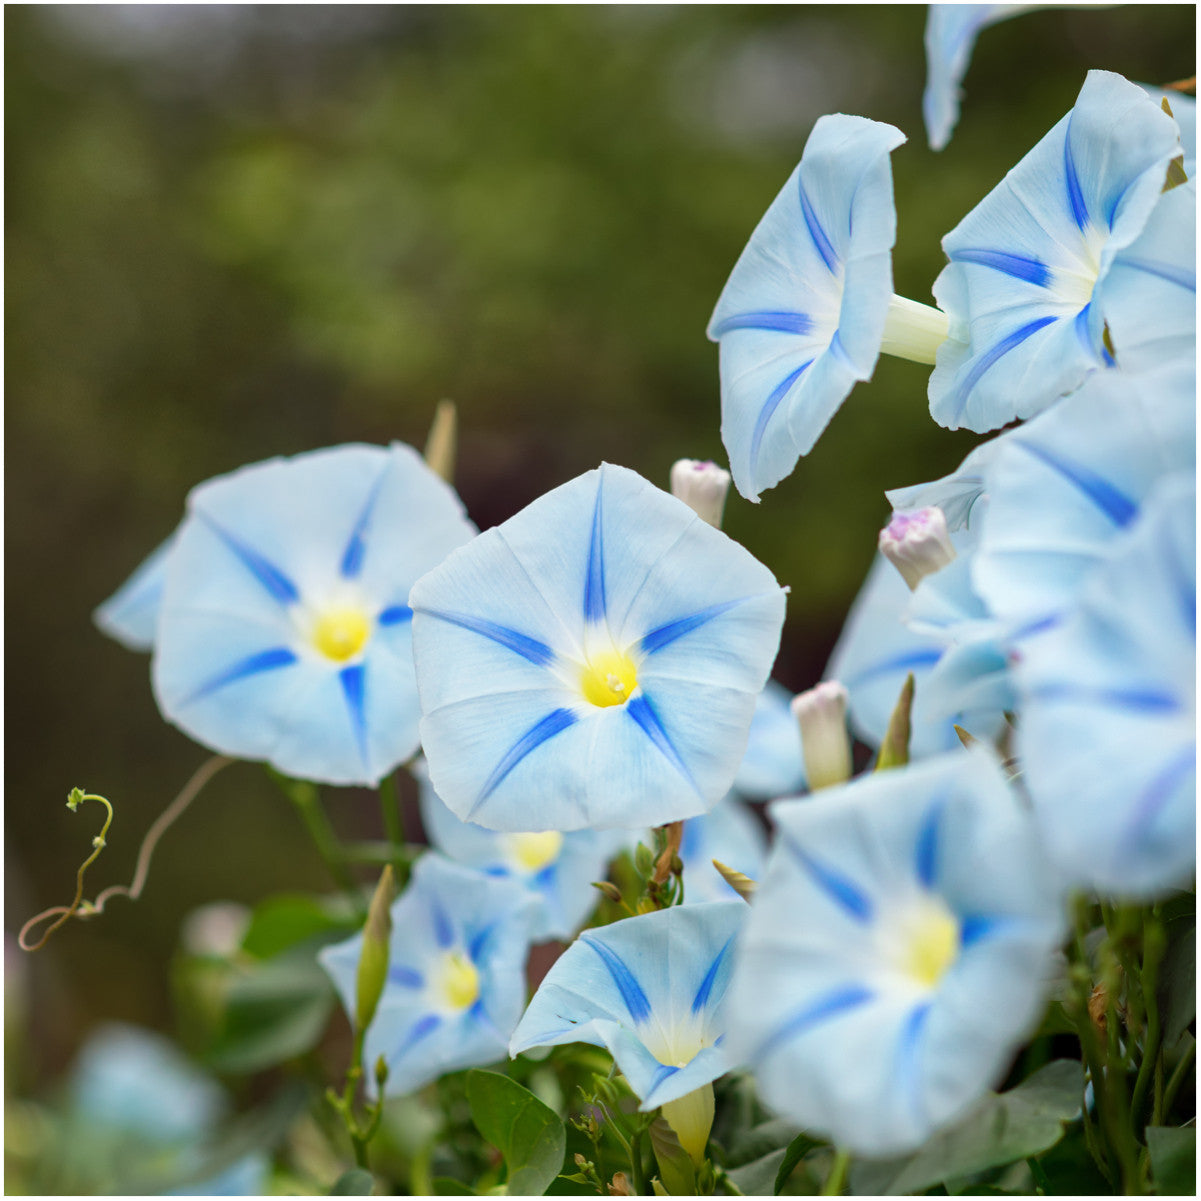 Blue Star Morning Glory Seeds Ipomoea Tricolor